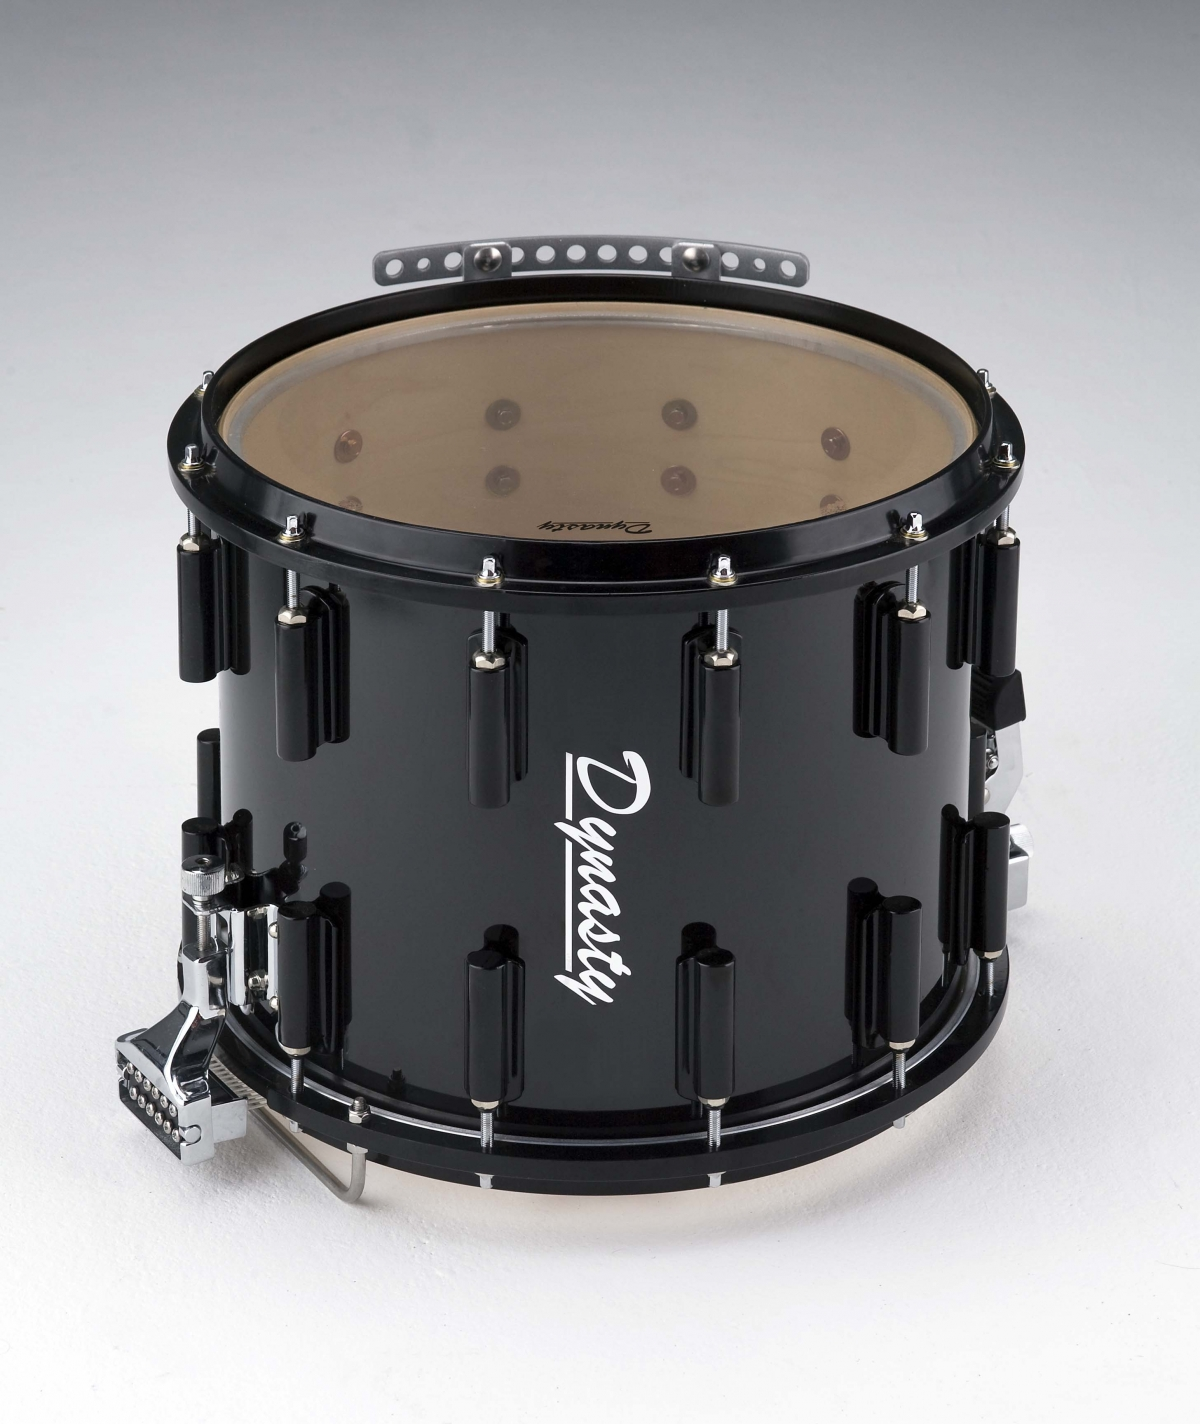 ms ld14n dynasty marching snare drum musix instruments. Black Bedroom Furniture Sets. Home Design Ideas